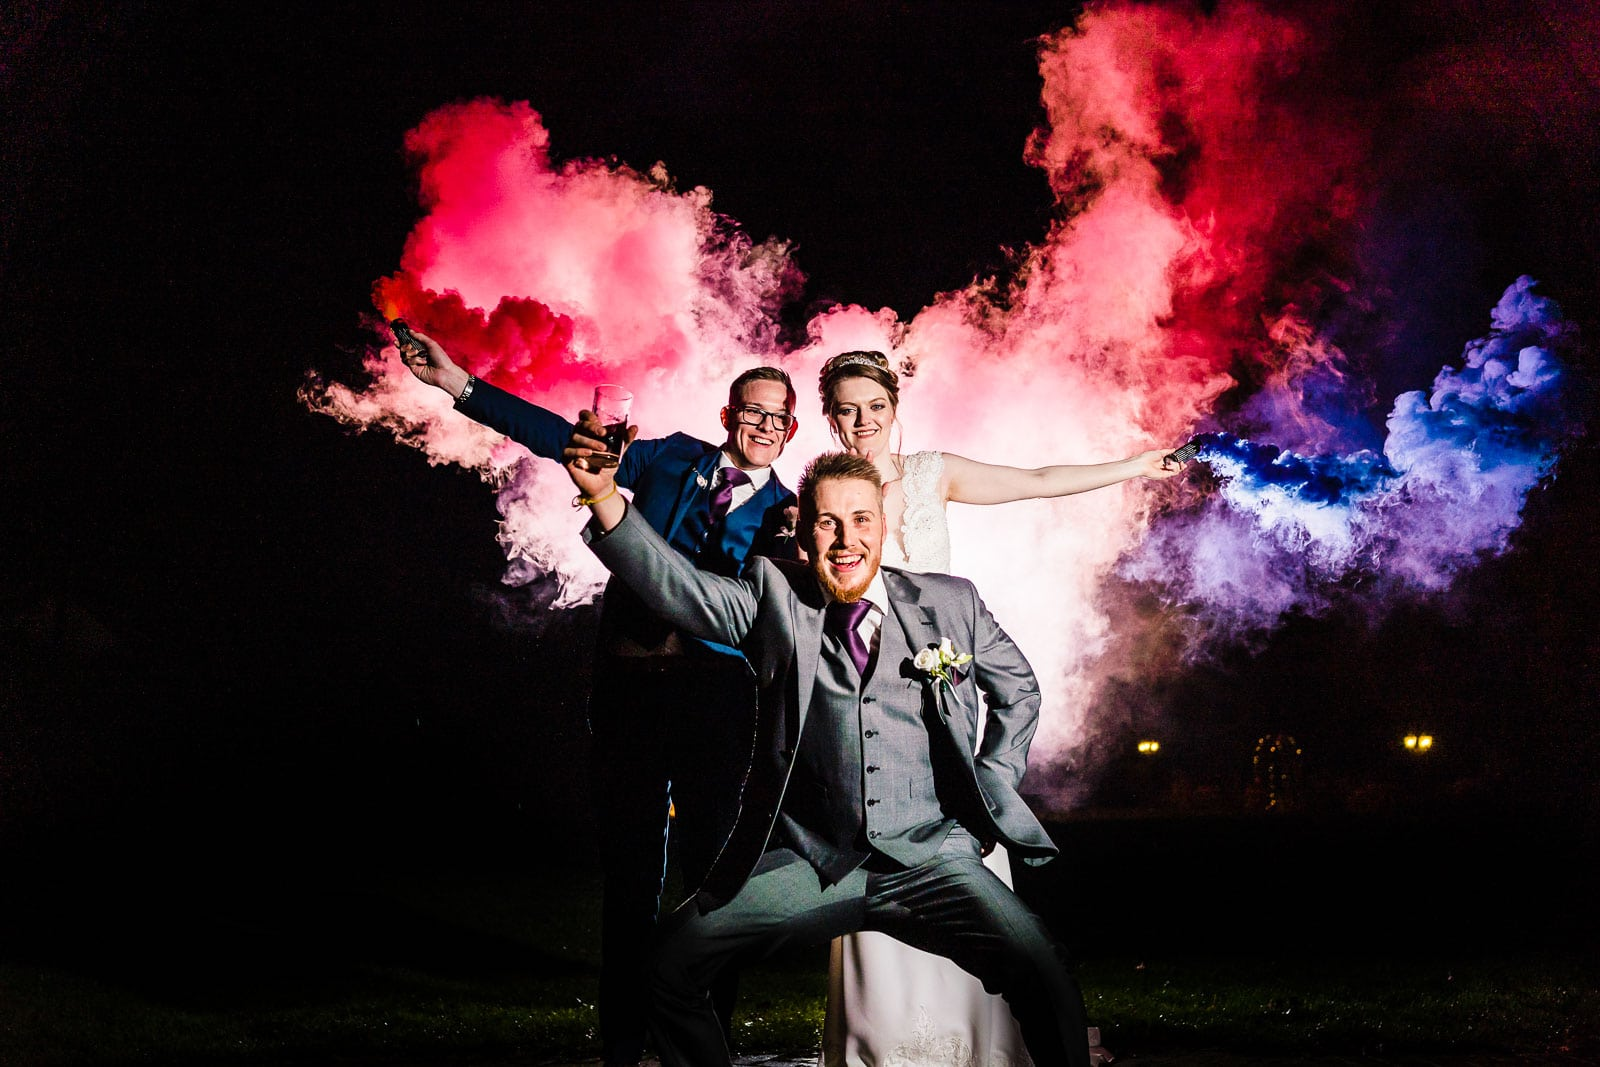 Smoke grenades being used at night by a bride and groom, creative lighting